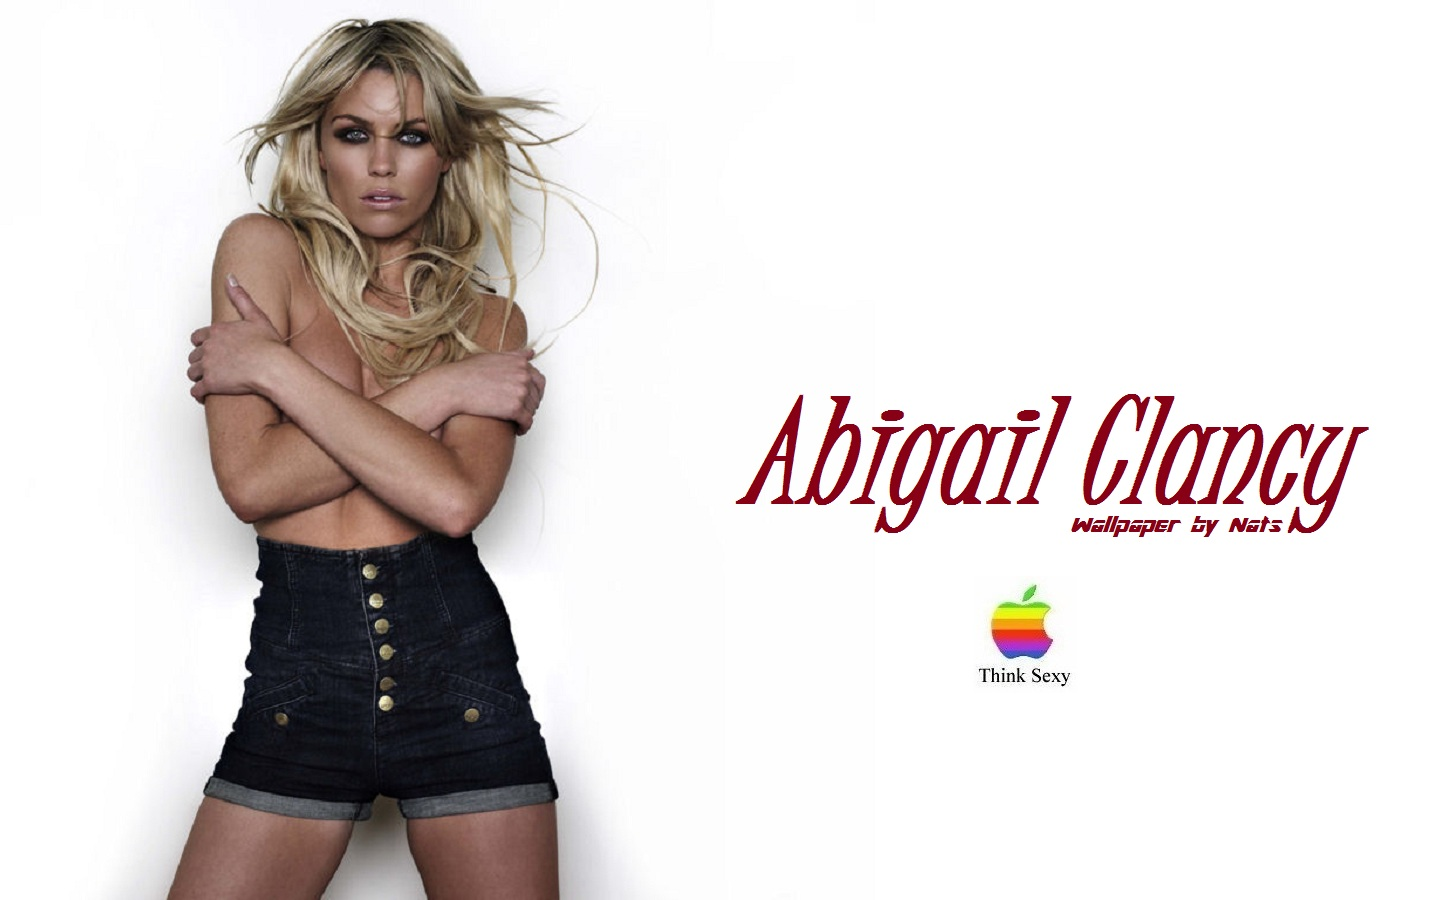 Free Download HQ Abigail Clancy Wallpaper Num 45 1440 x 900 158 5